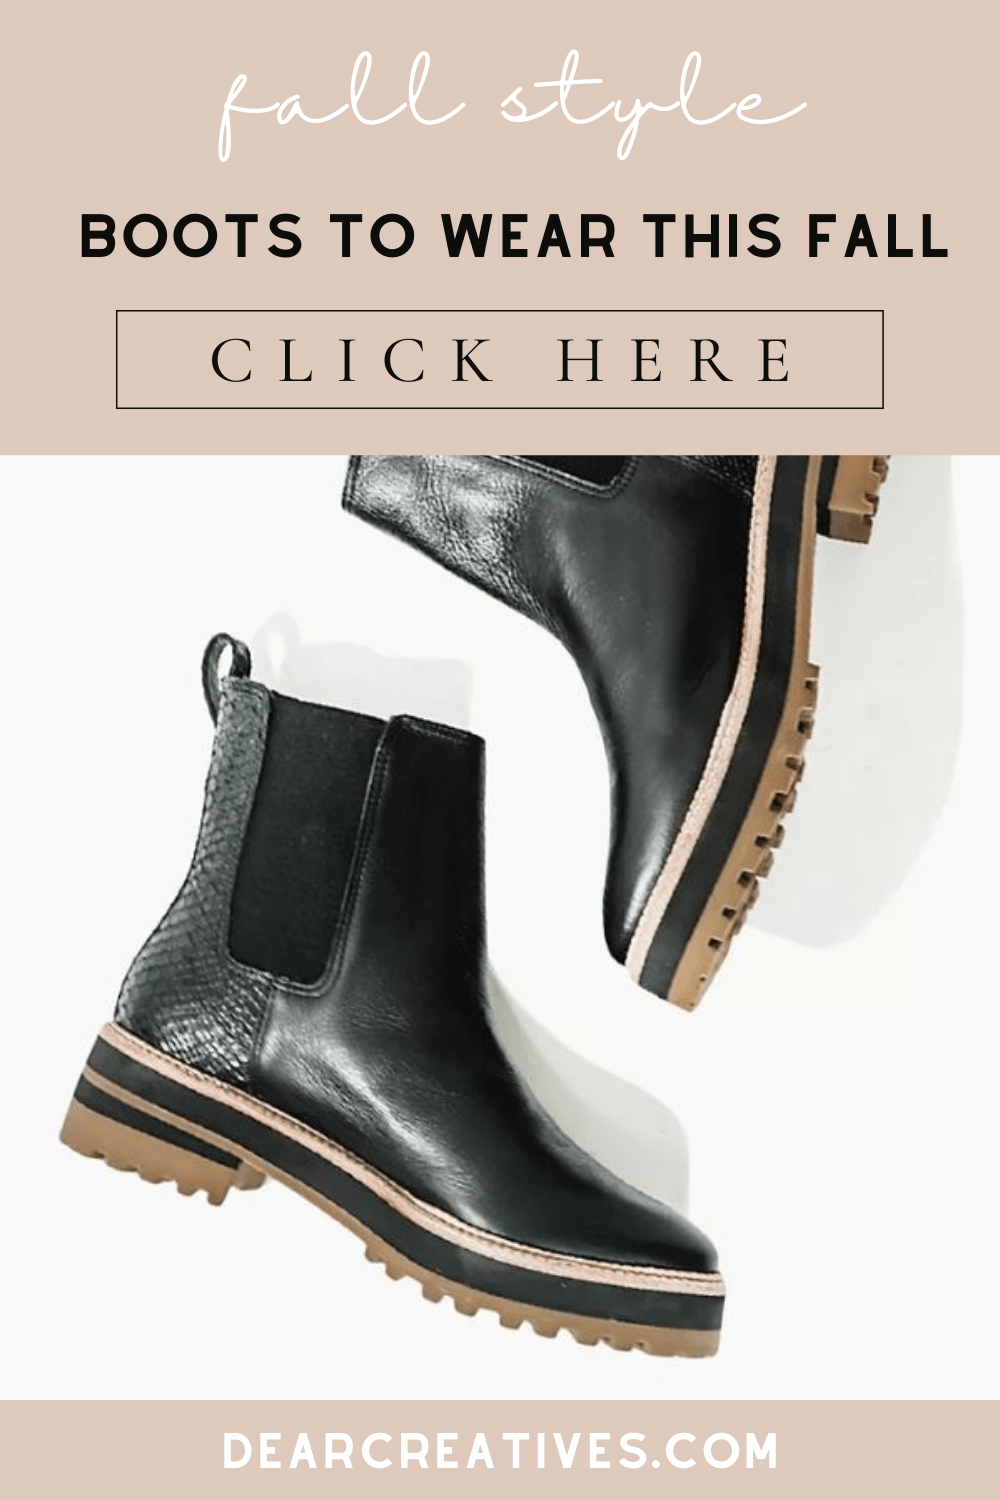 Fall Boots To Wear